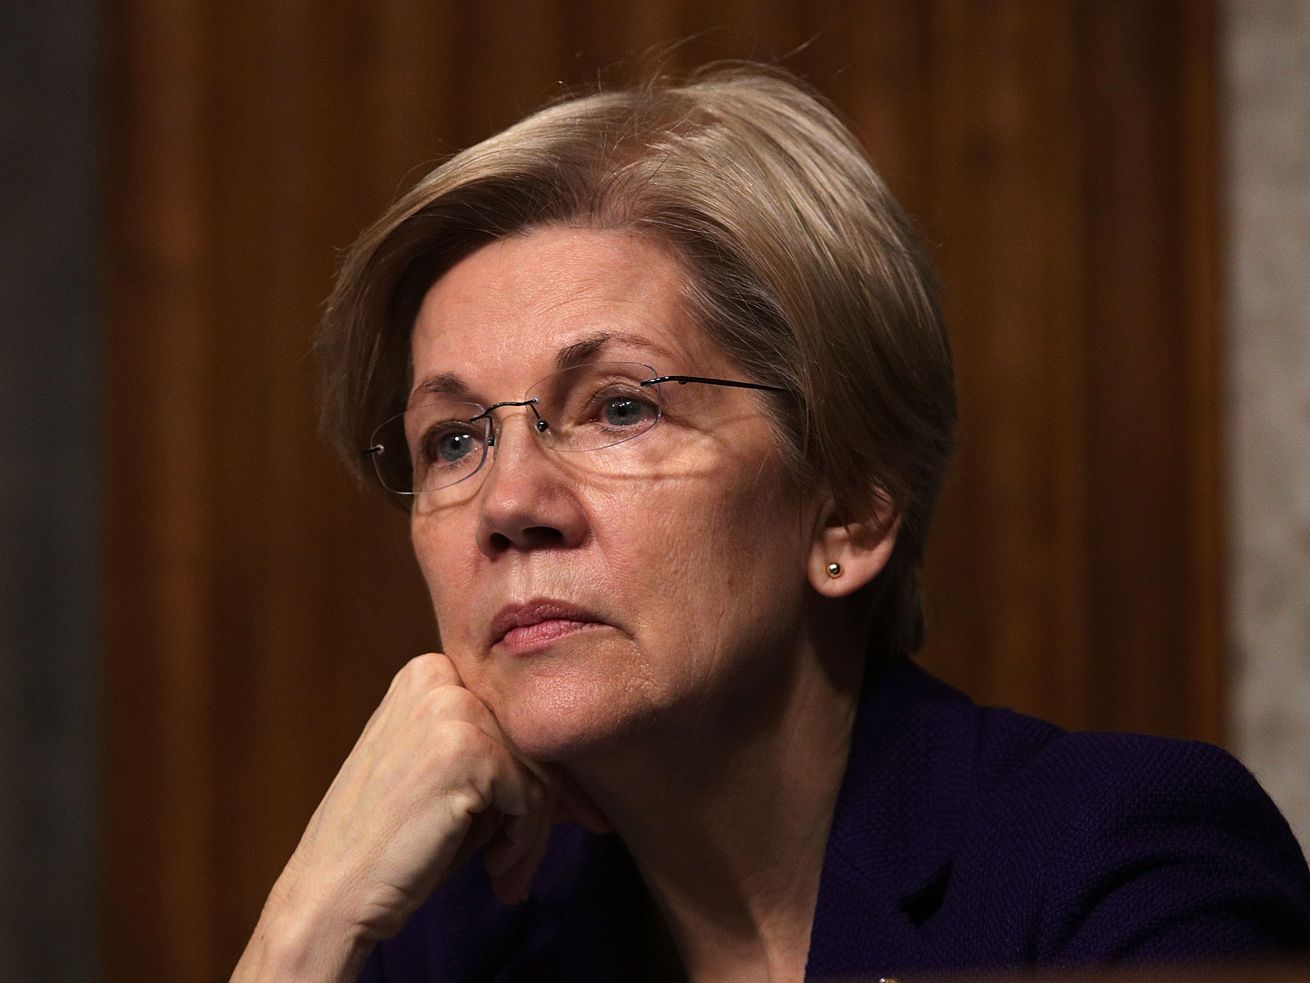 U.S. Sen. Elizabeth Warren listens during a hearing before Senate Armed Services Committee in February 2017 on Capitol Hill in Washington, DC.